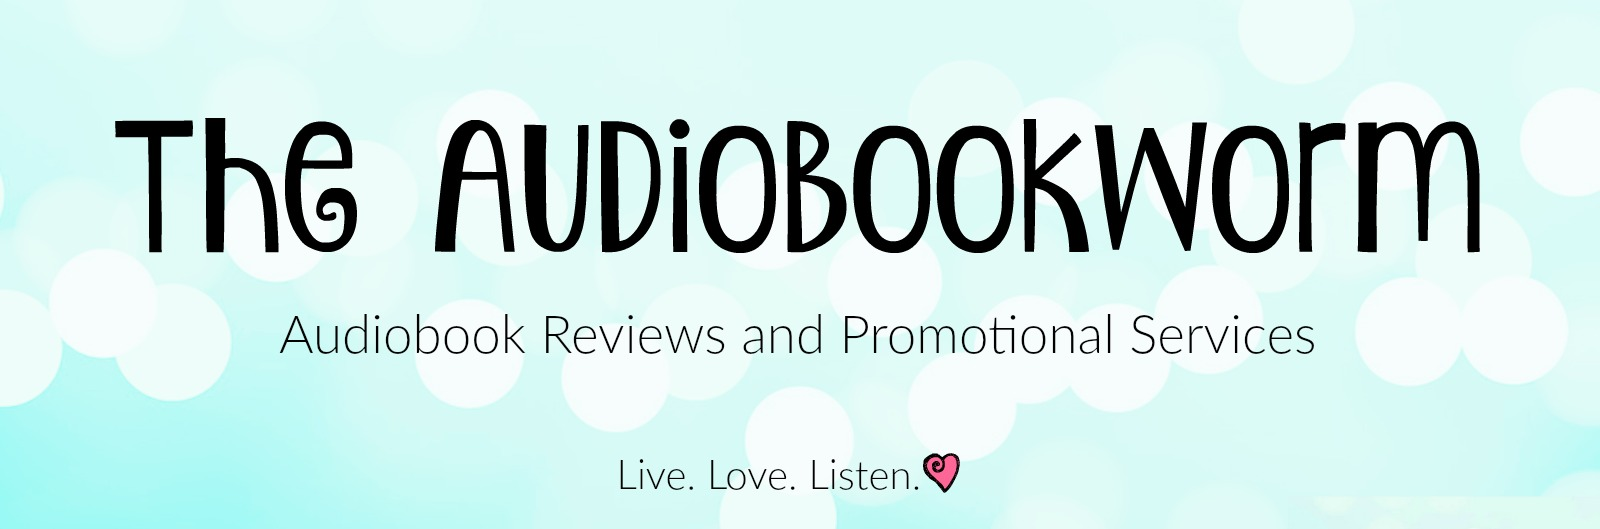 Audiobook Empire Facebook Cover (6)